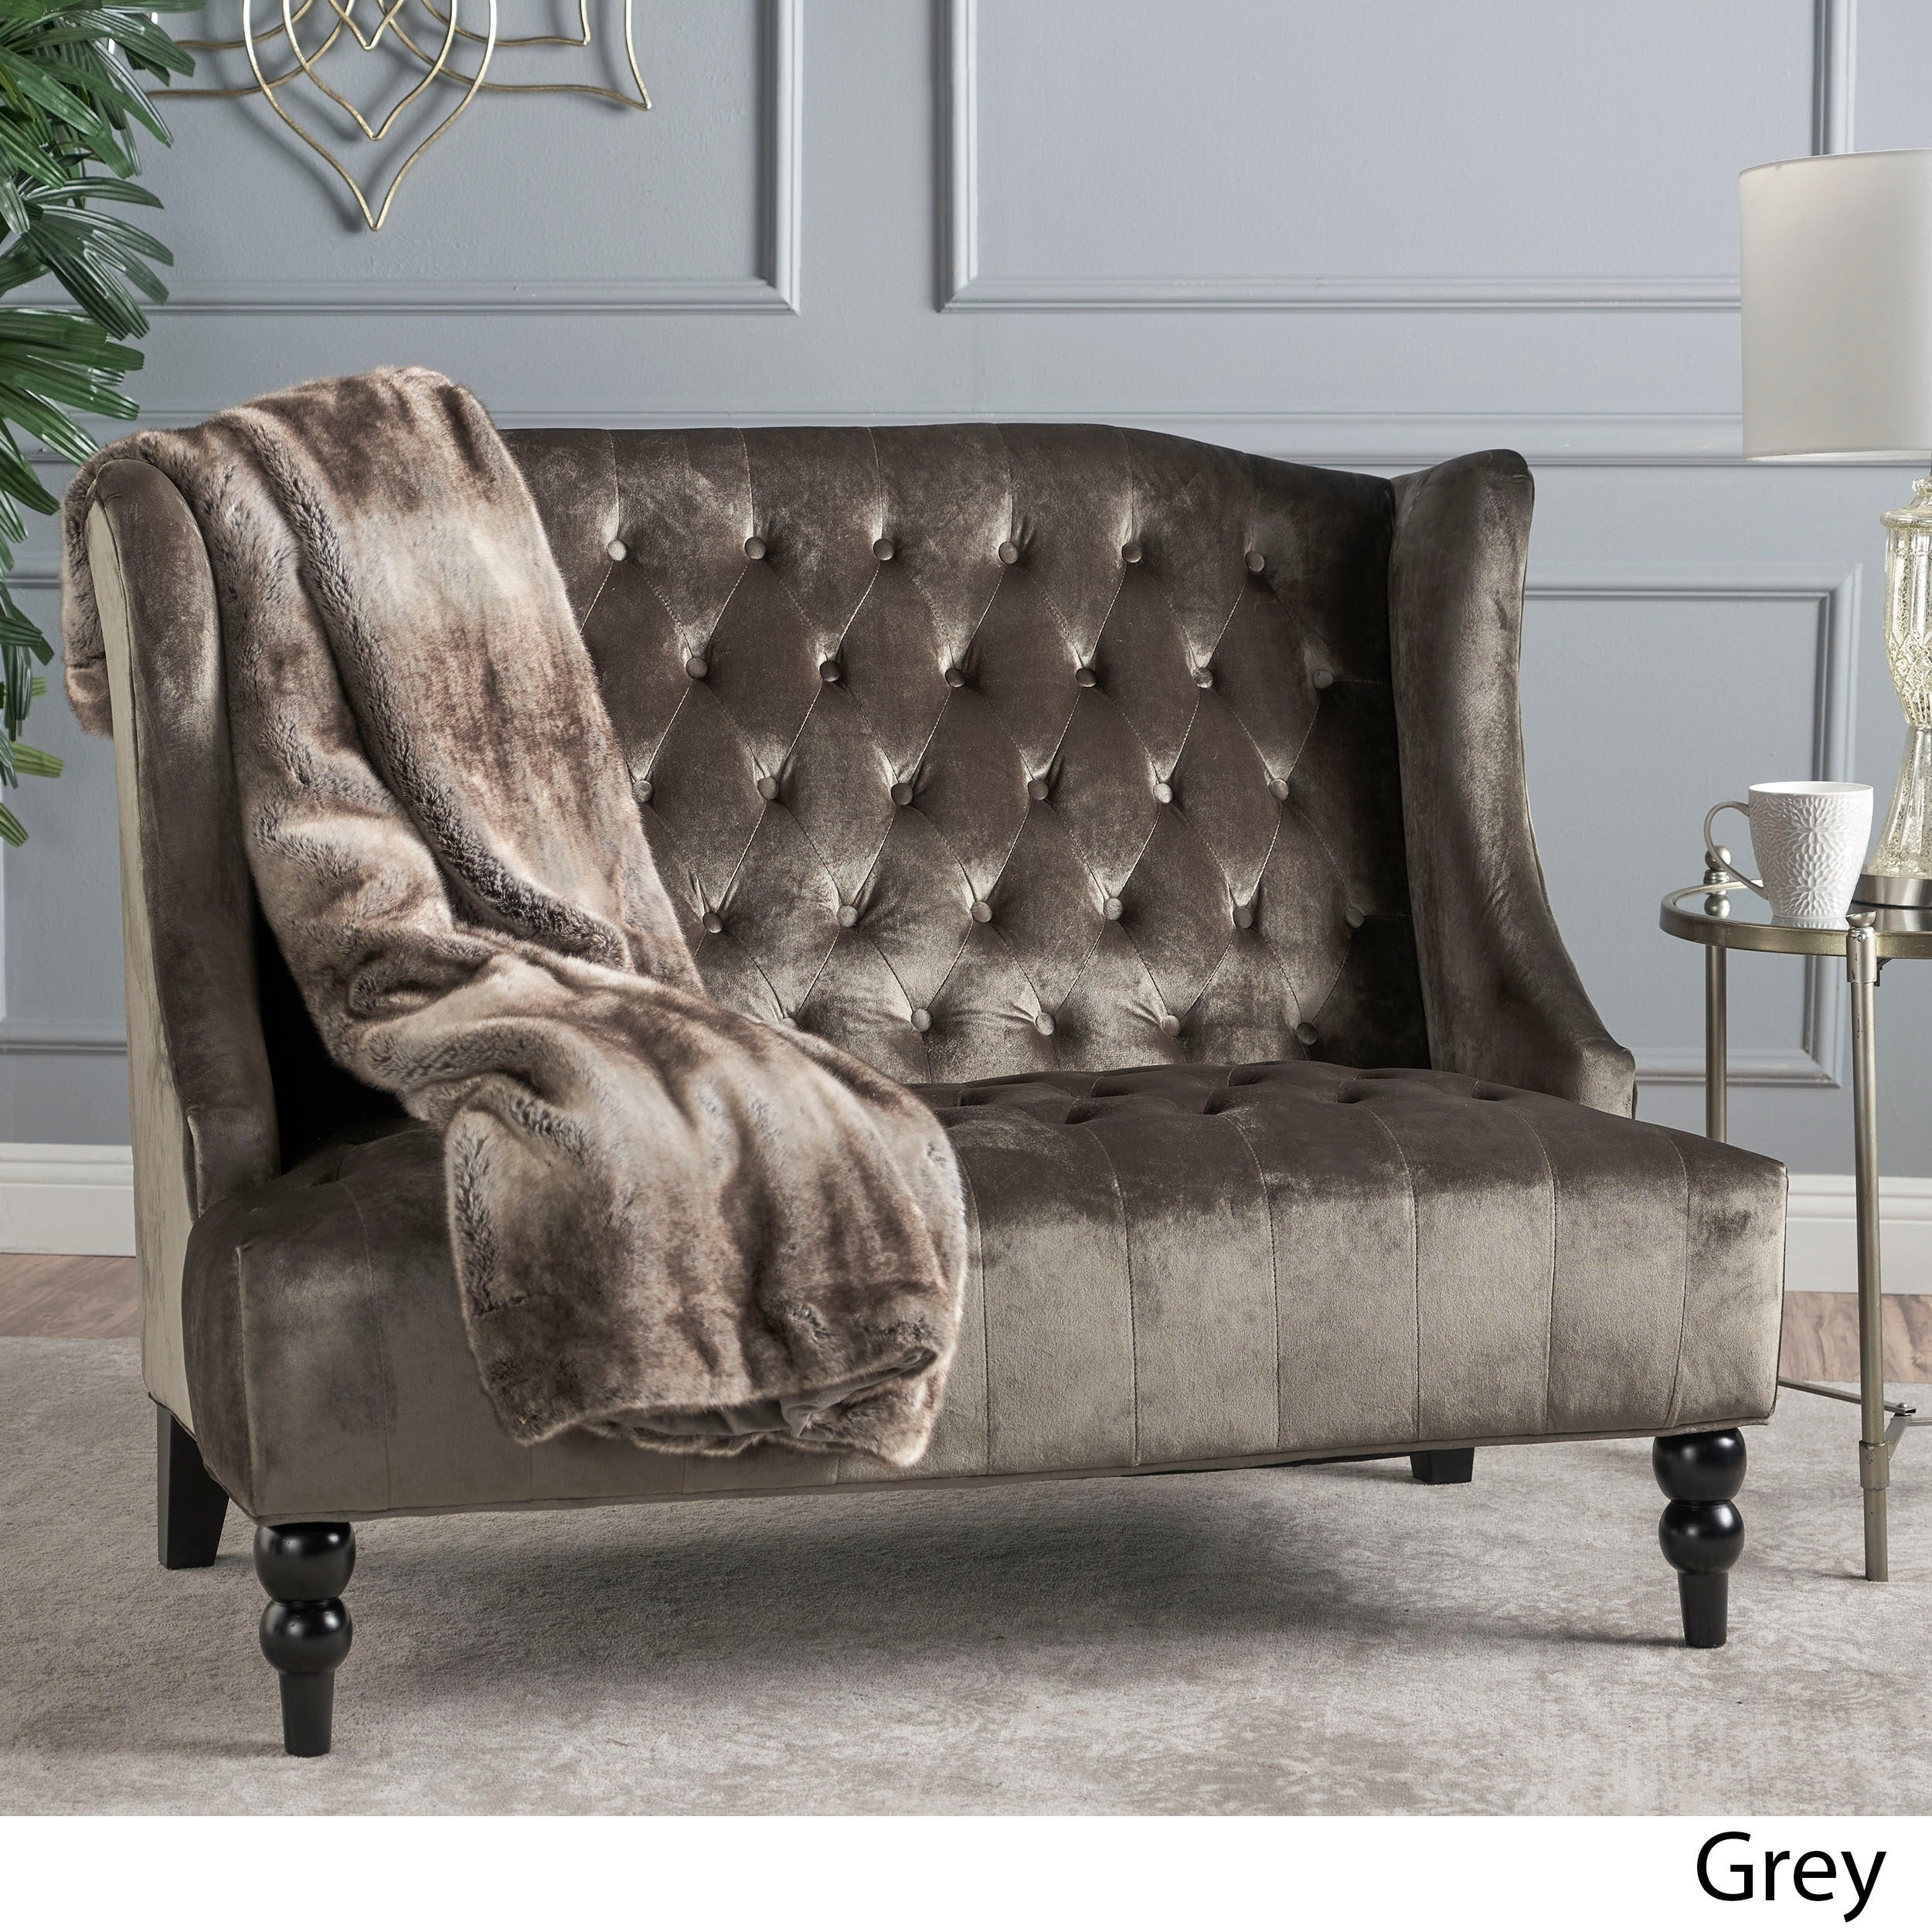 people grey long gray shape design uncategorized to legs tufted mesmerizing black two round draws loveseat rectangular a